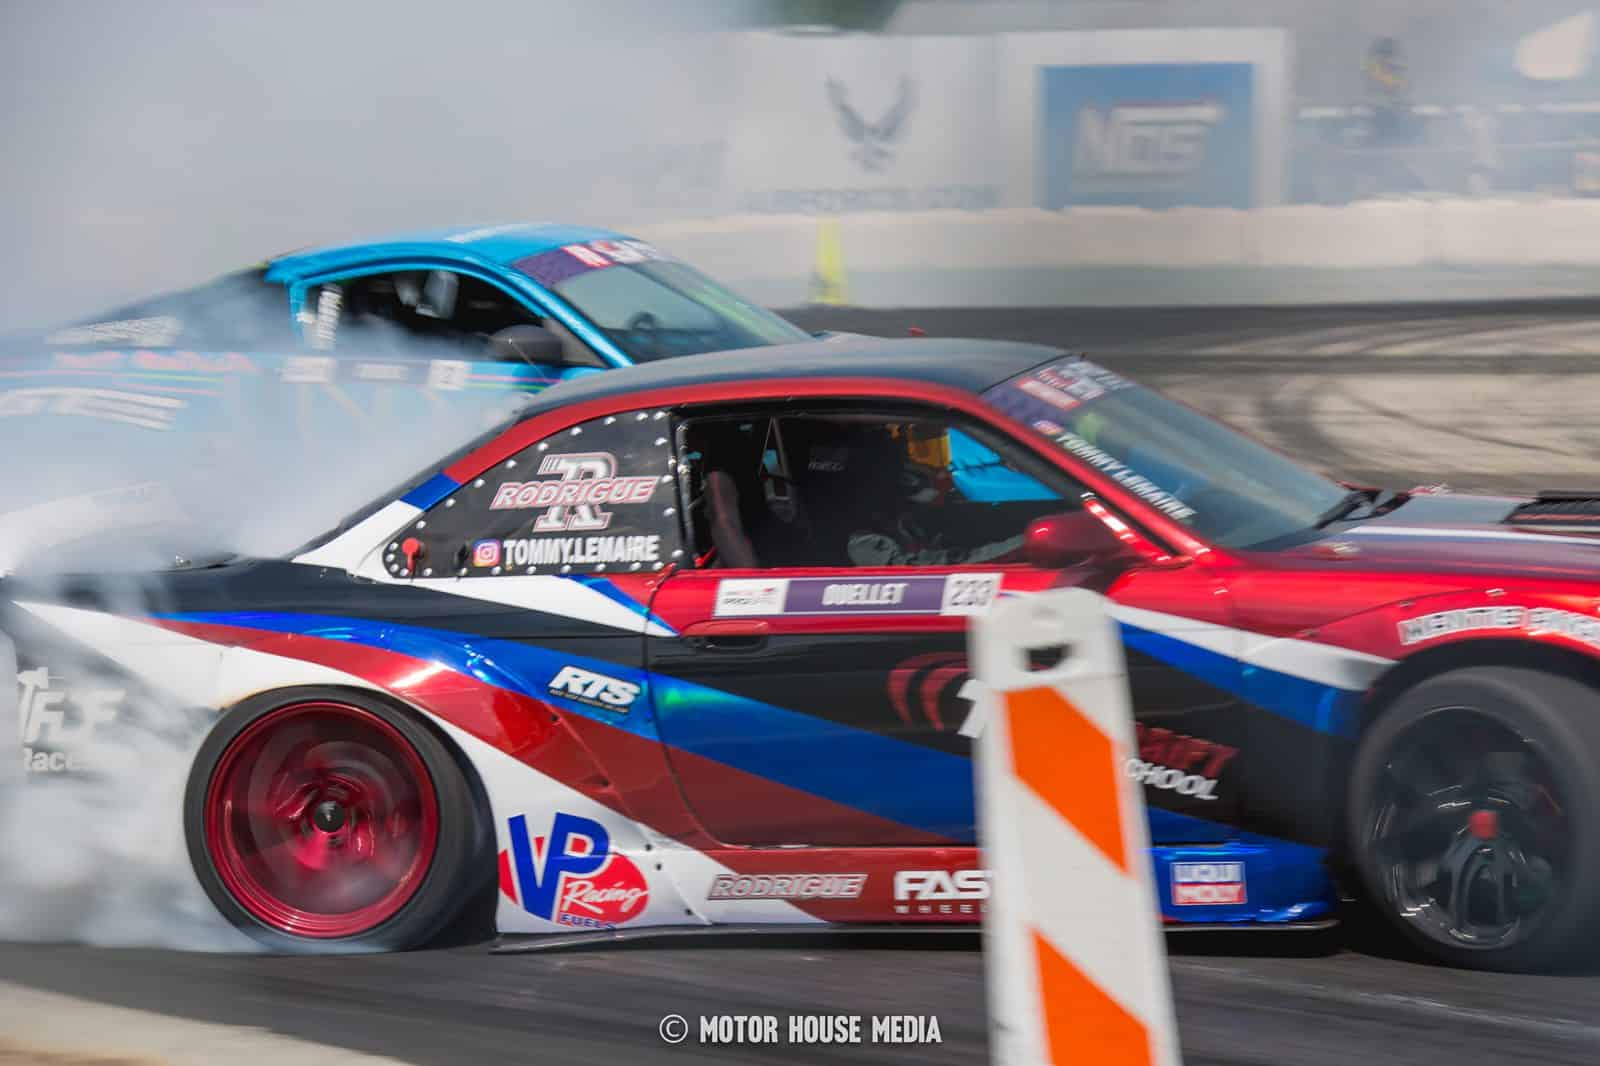 Tommy Lemaire shredding tires in his formula drift car